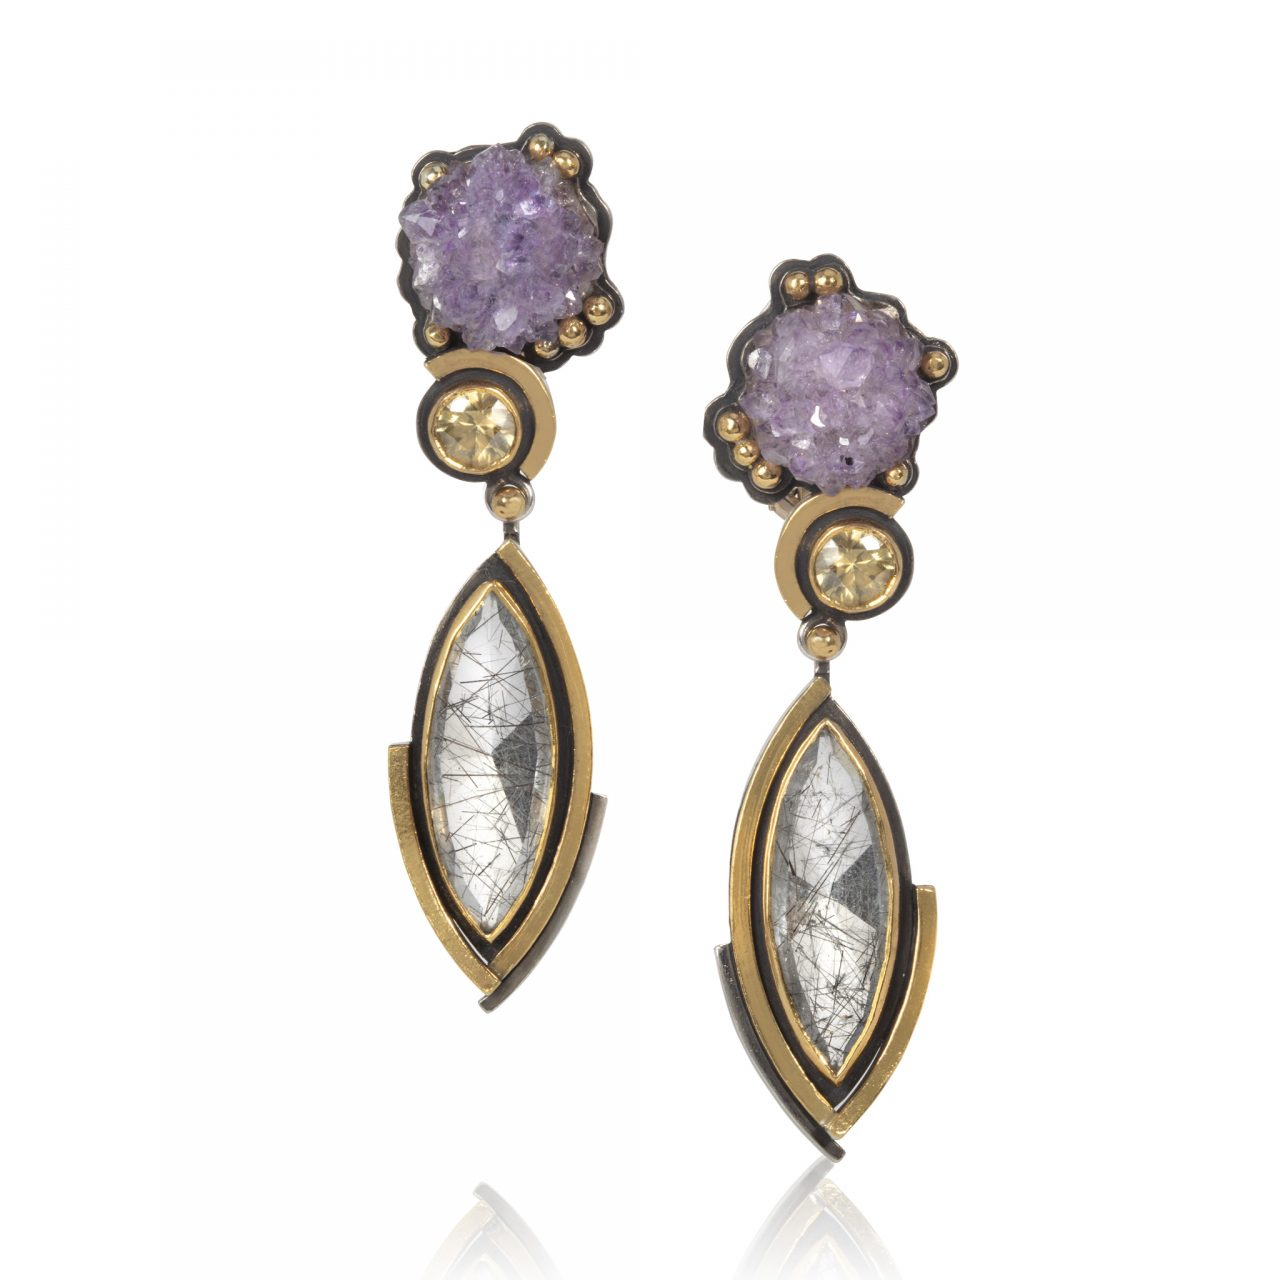 Amethyst, Quartz and Grossular Garnet Earrings